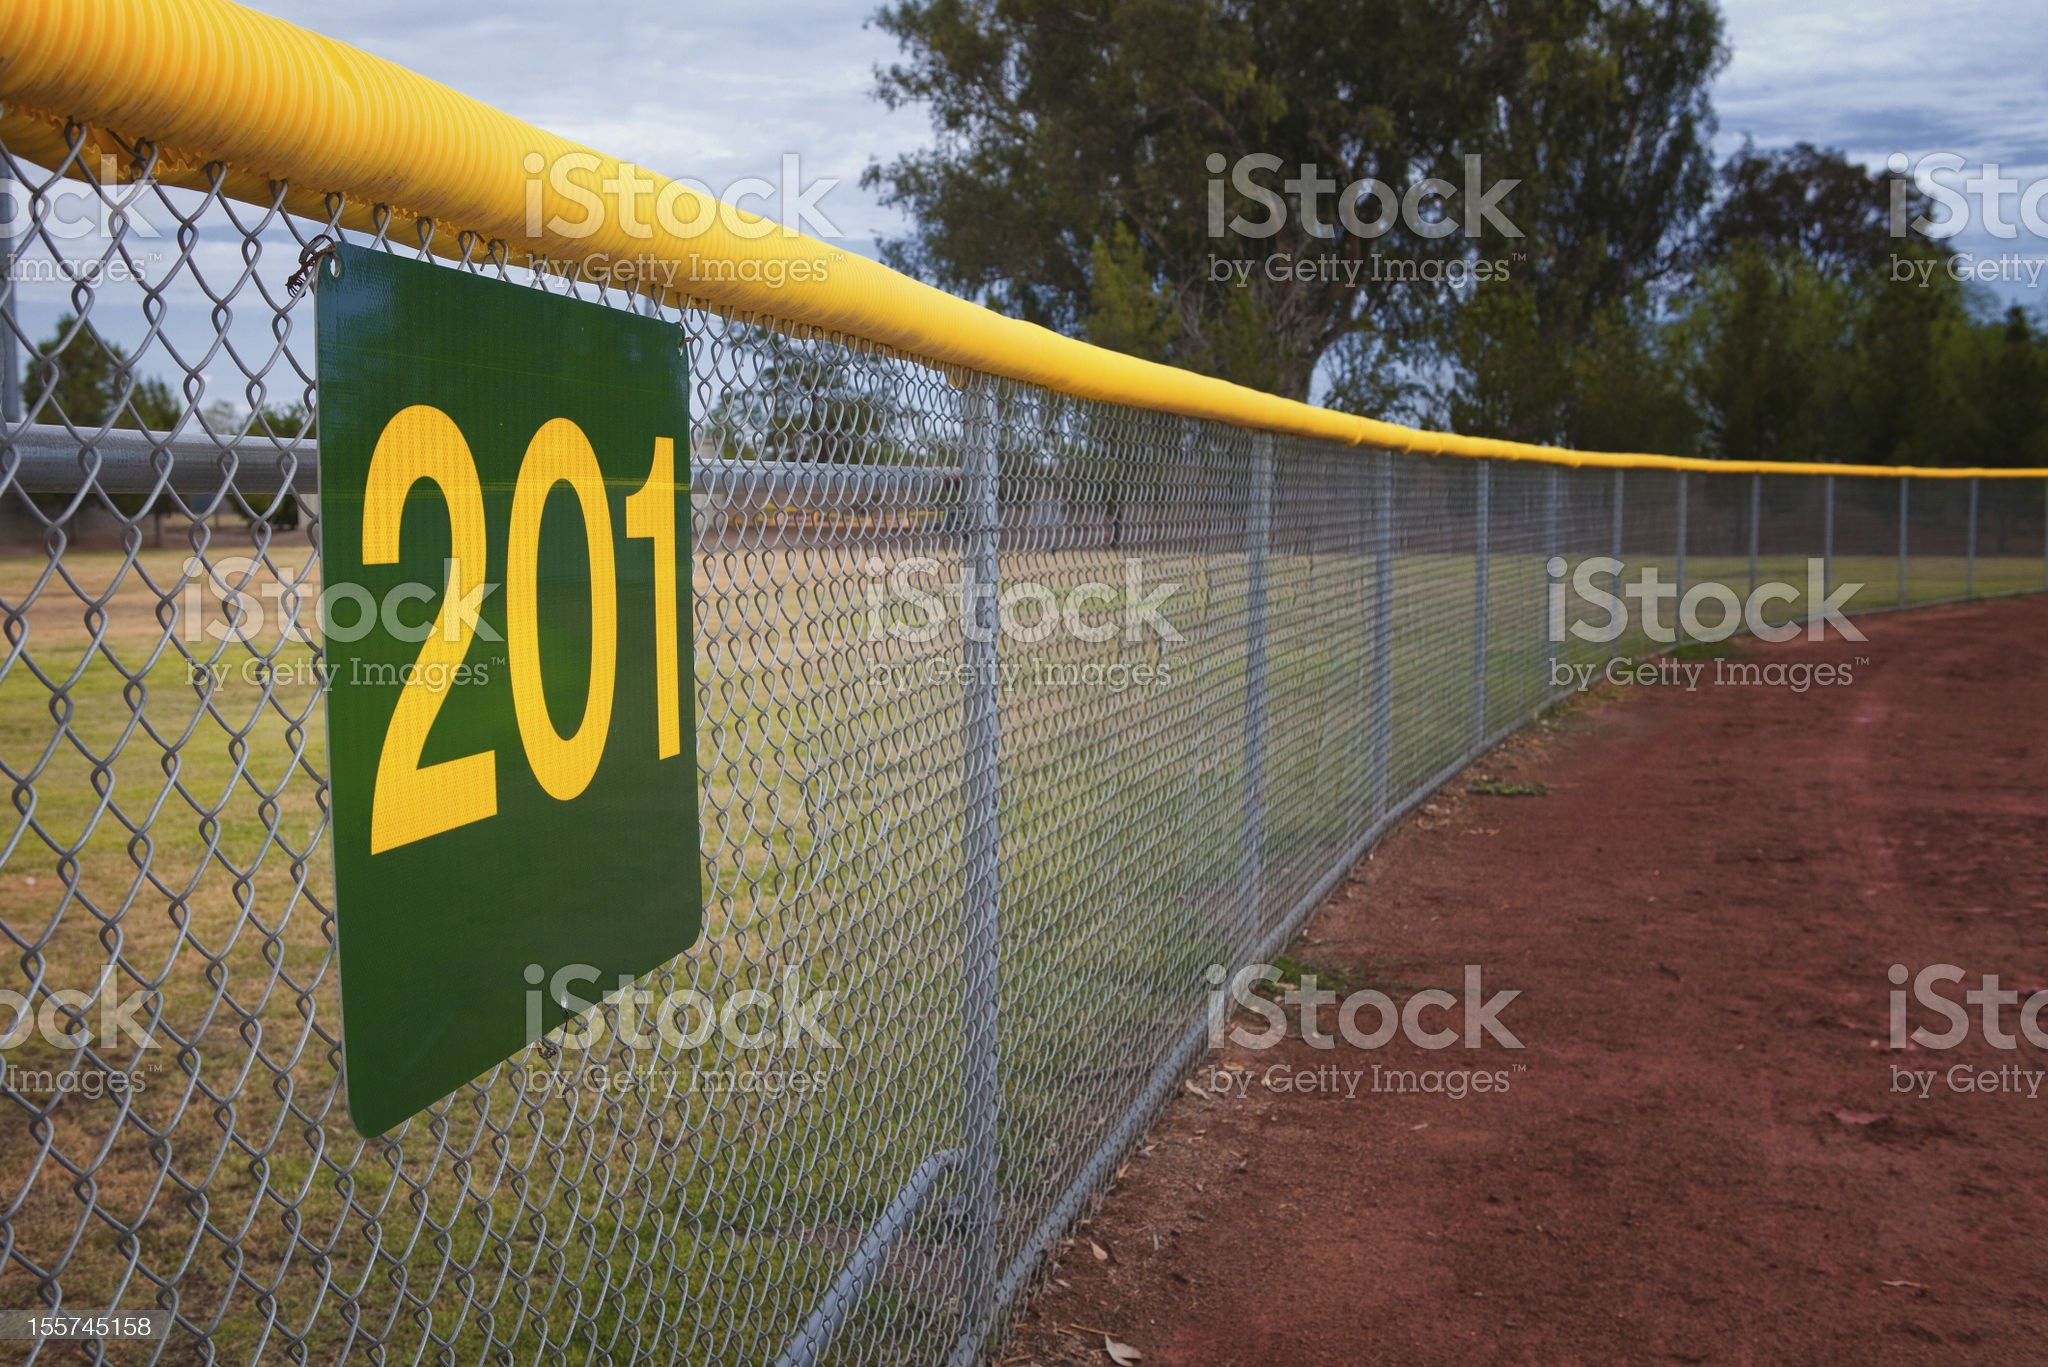 Little League Baseball Fence royalty-free stock photo